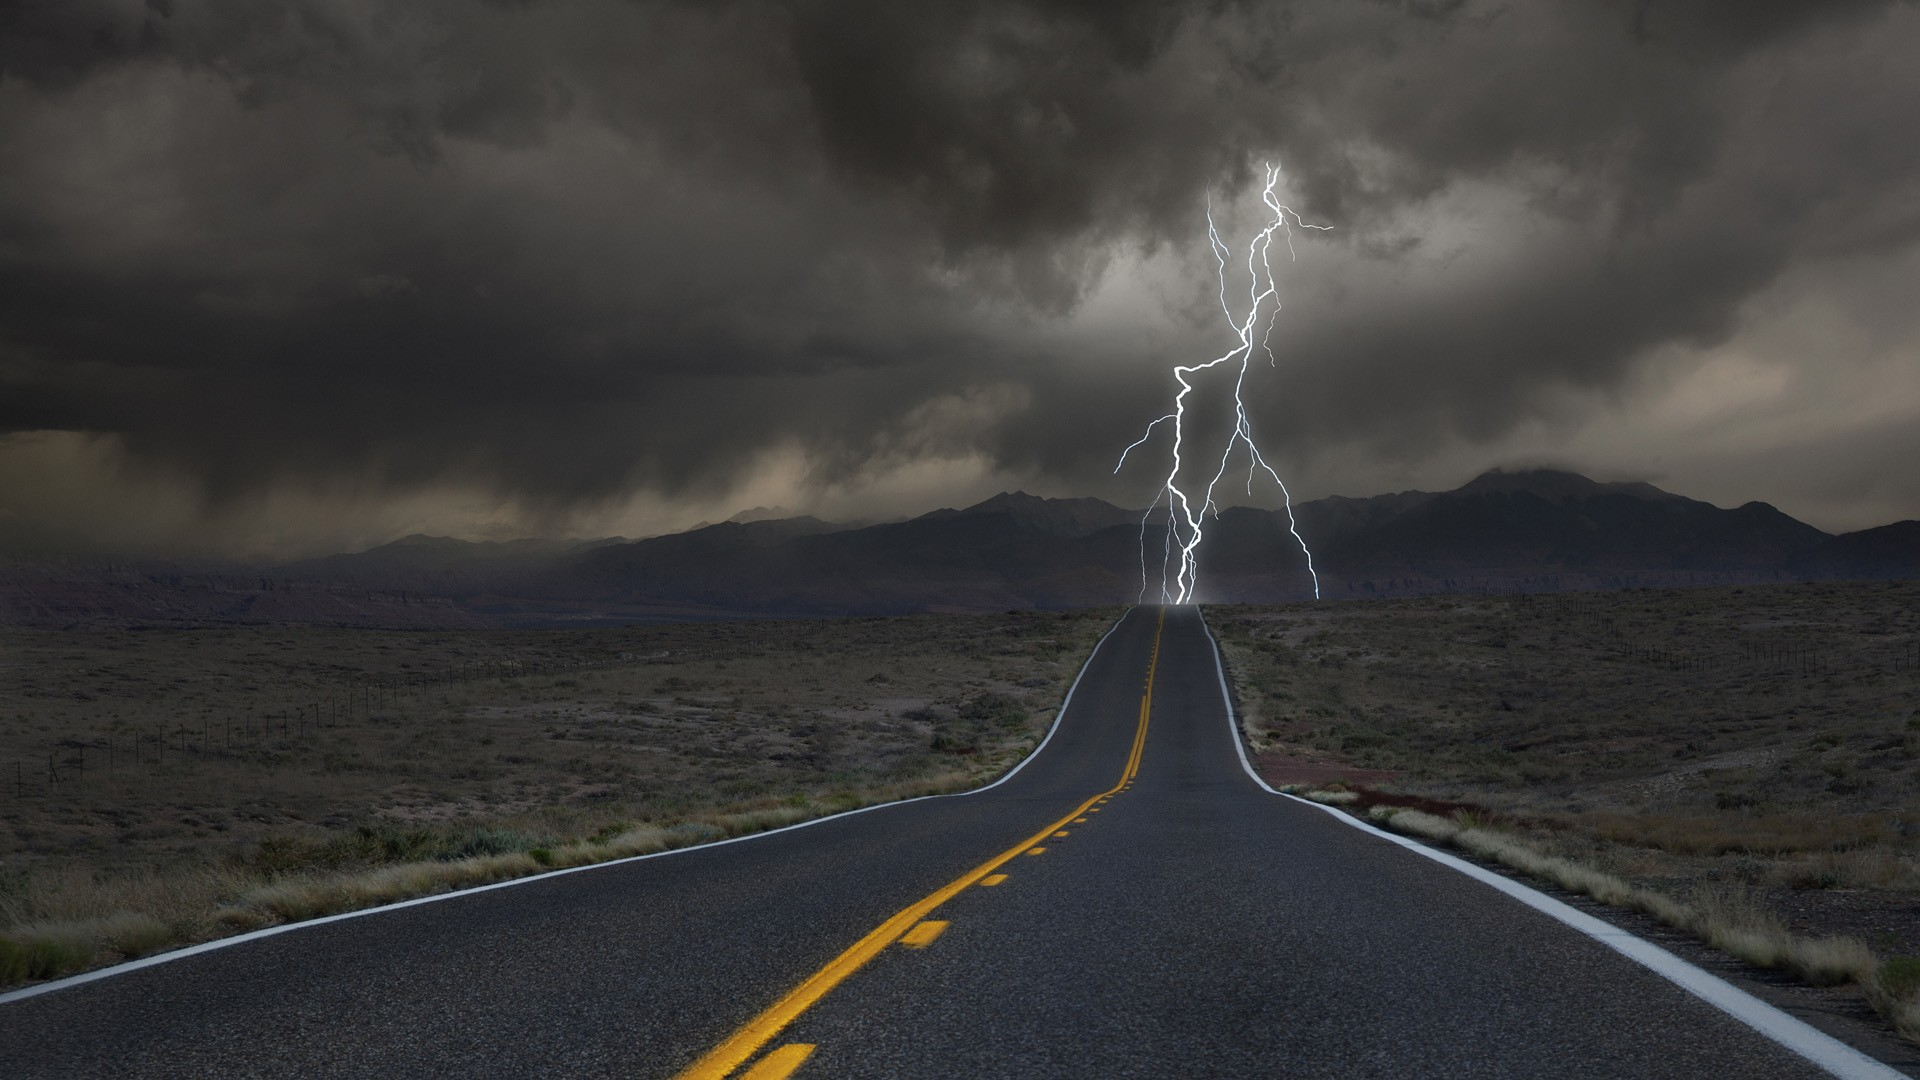 High Resolution Images Collection Storm by Lana Sova download 1920x1080